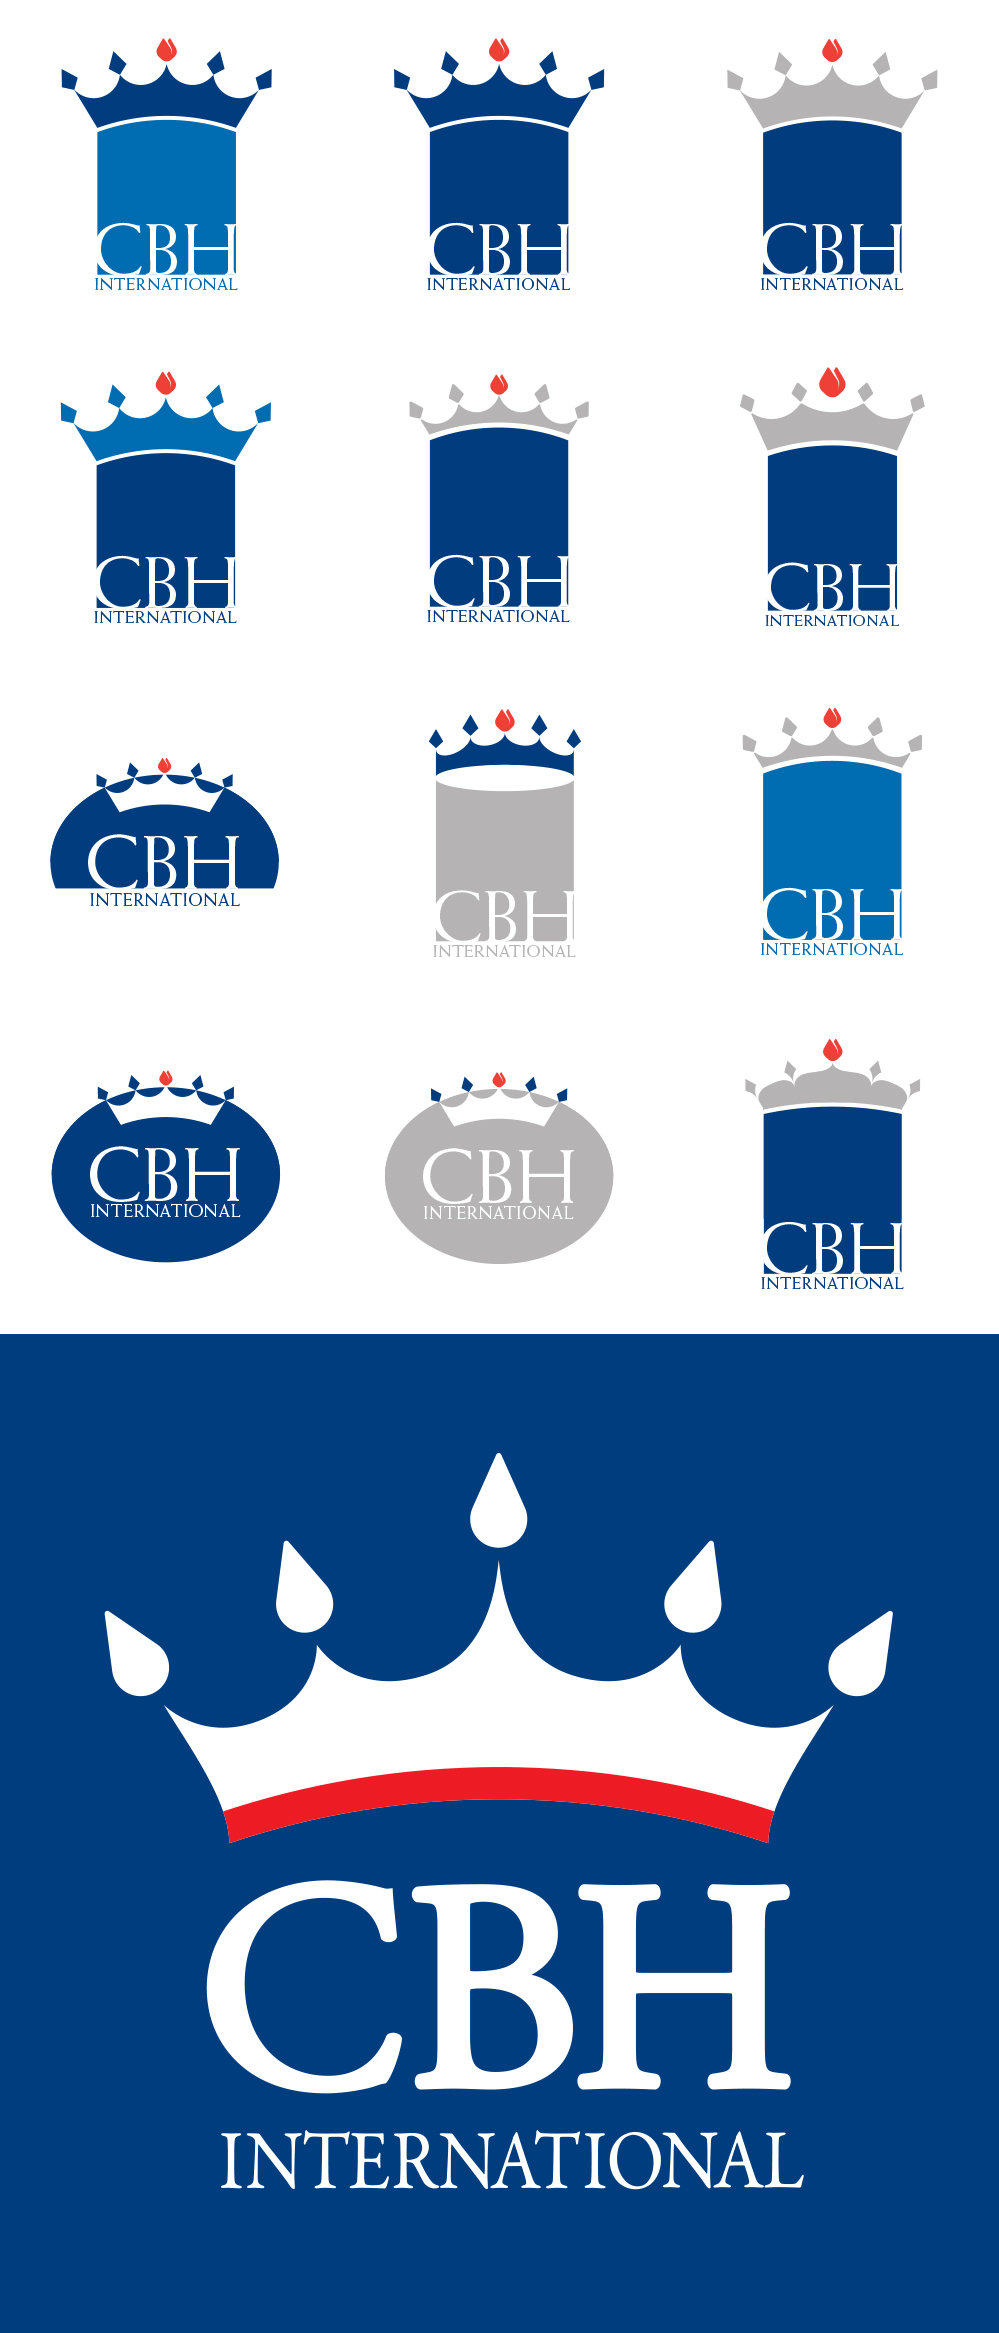 LOGO DESIGN/BRANDING  - CBH International | logo design process - ©UnParalleled, LLC dba UP-Ideas / Roger Sawhill / Mark Braught - Atlanta, Georgia | Lawrenceville, Georgia | Commerce, Georgia